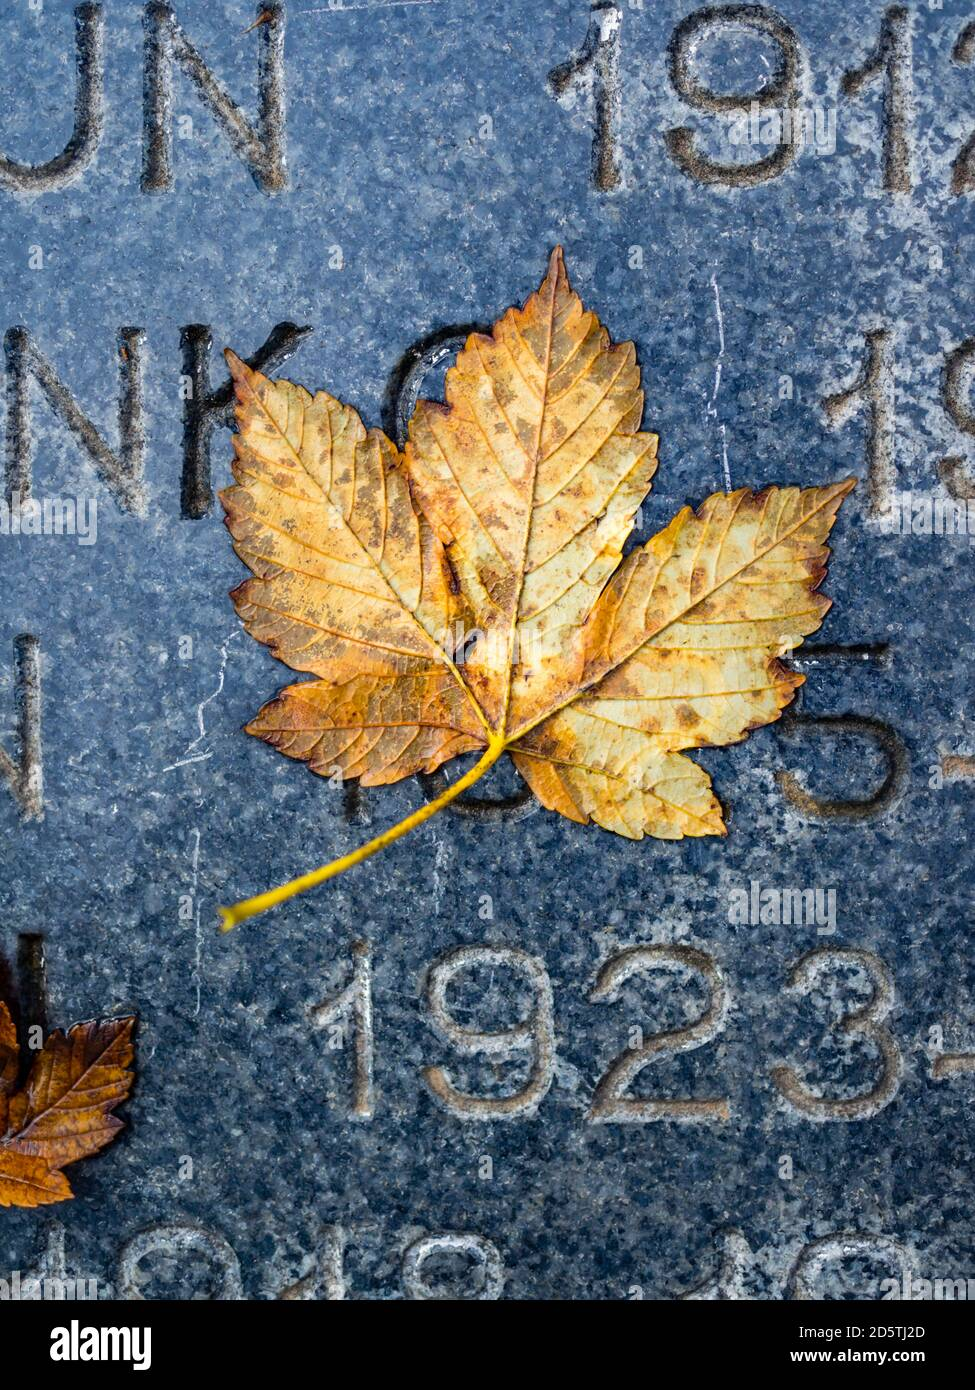 Damp fallen leaf water-glued attached single one singularity Fall Autumn season seasonal year years number numbers eched in marble surface 1923 Stock Photo